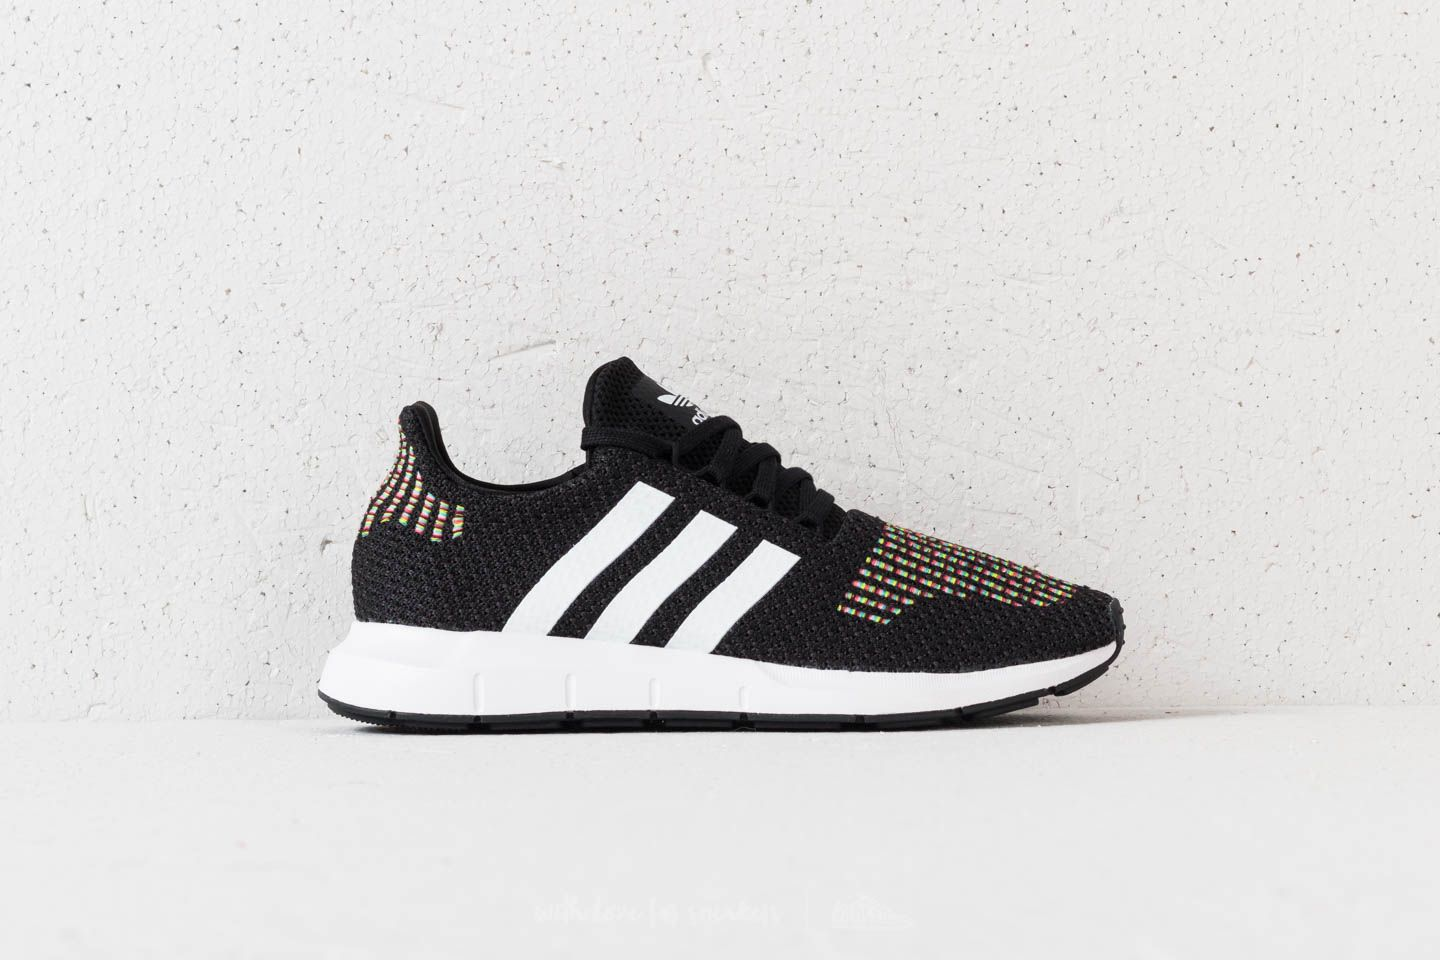 adidas Swift Run W Core Black  FtwWhite  Core Black za skvělou cenu 2 440 5a9b8aebf7b